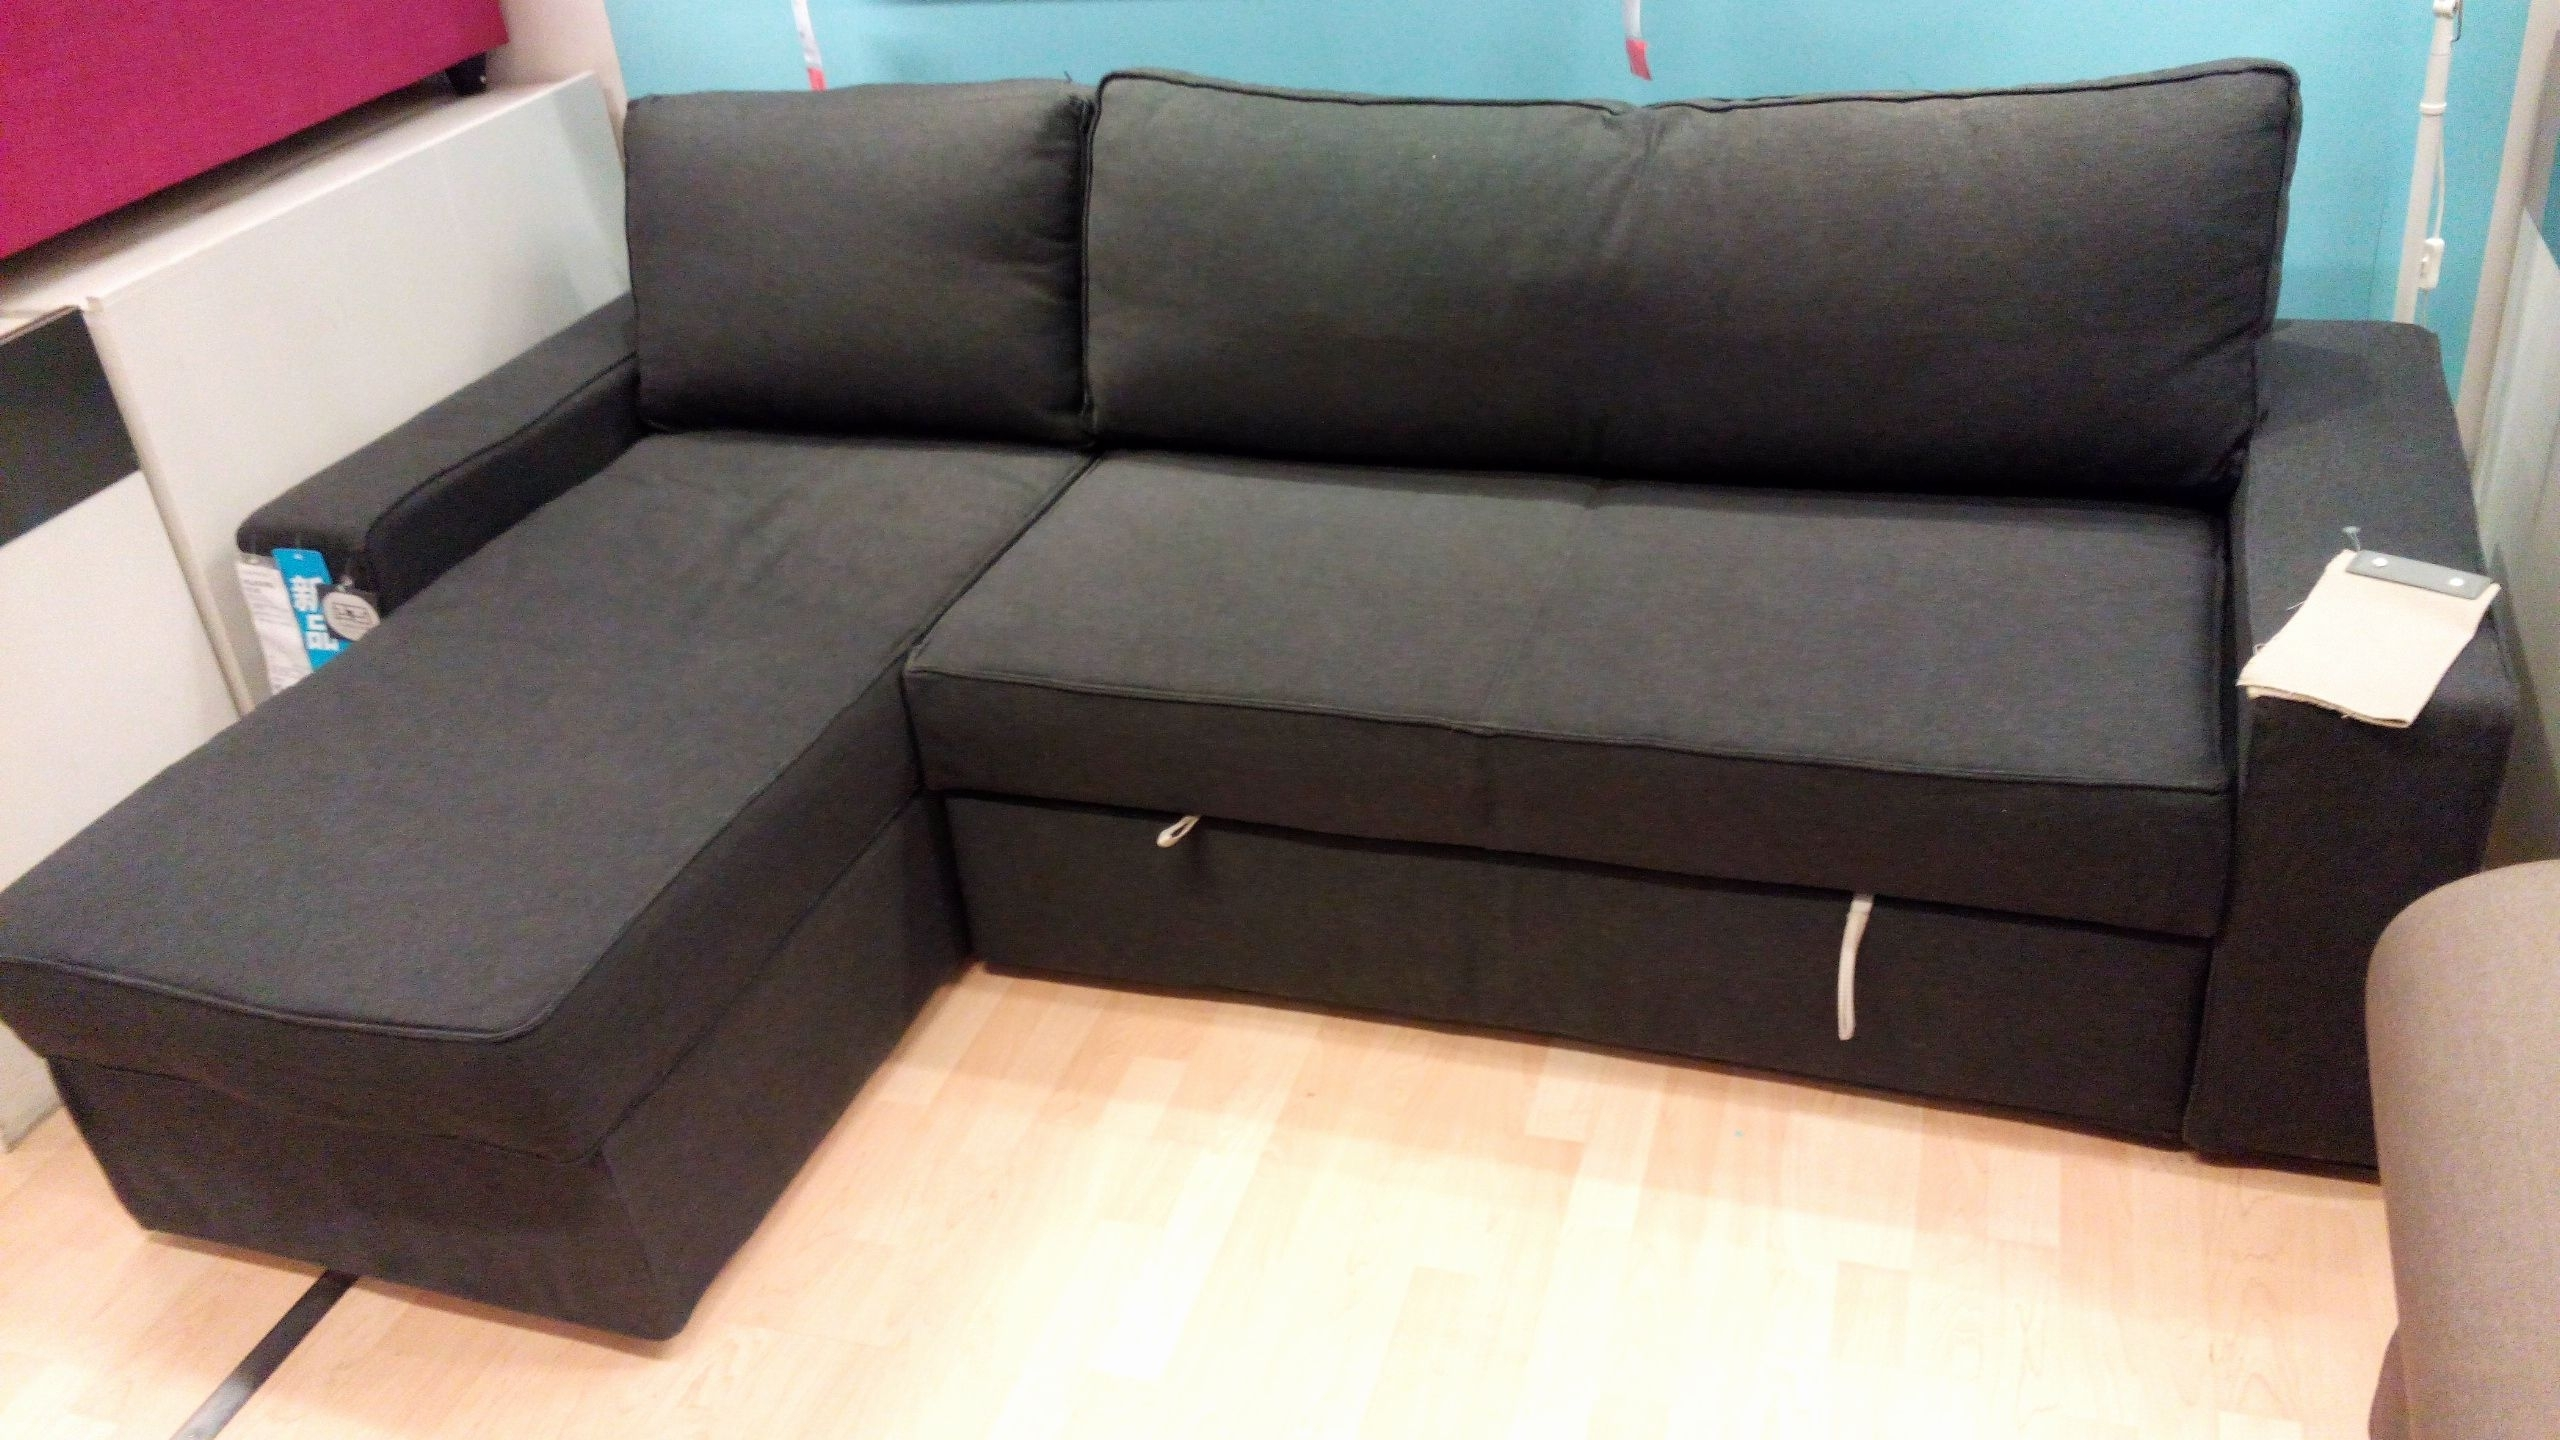 Fresh Sectional Sofa Bed With Storage Pictures Sectional Sofa Bed Intended For Manstad Sofas (View 7 of 10)